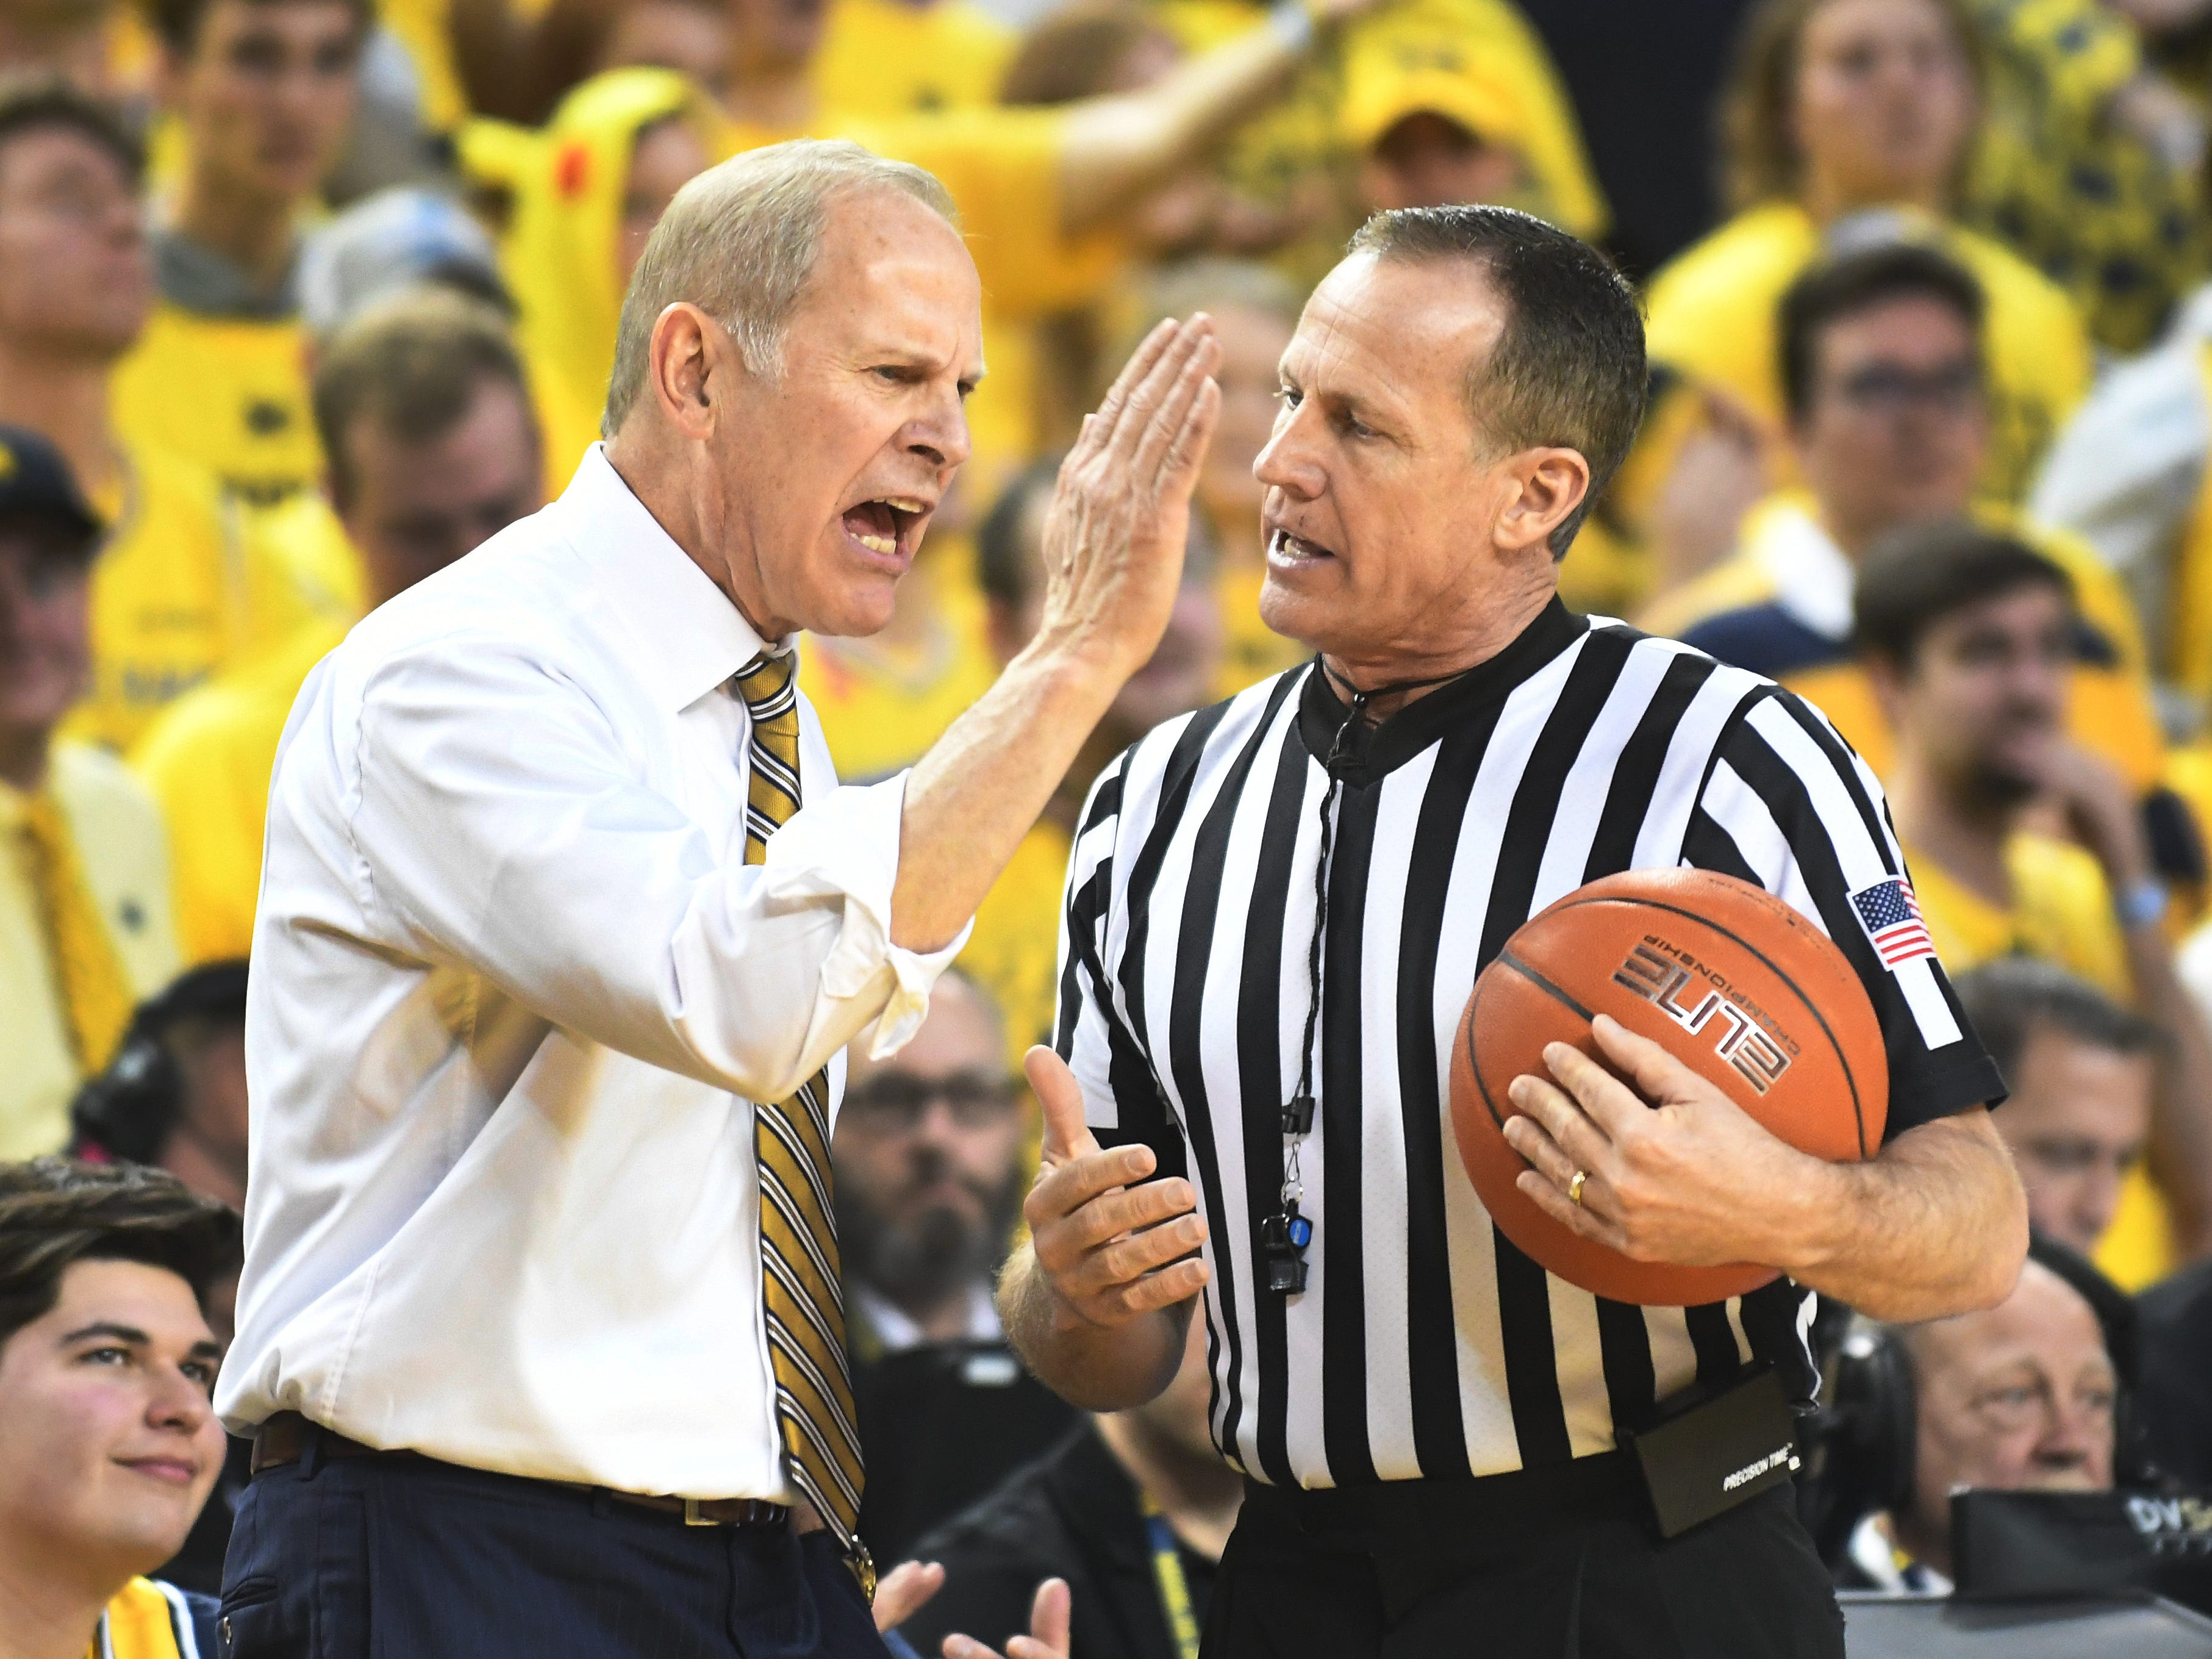 Michigan coach John Beilein has a disagreement with the ref during a break in the action in the first half.